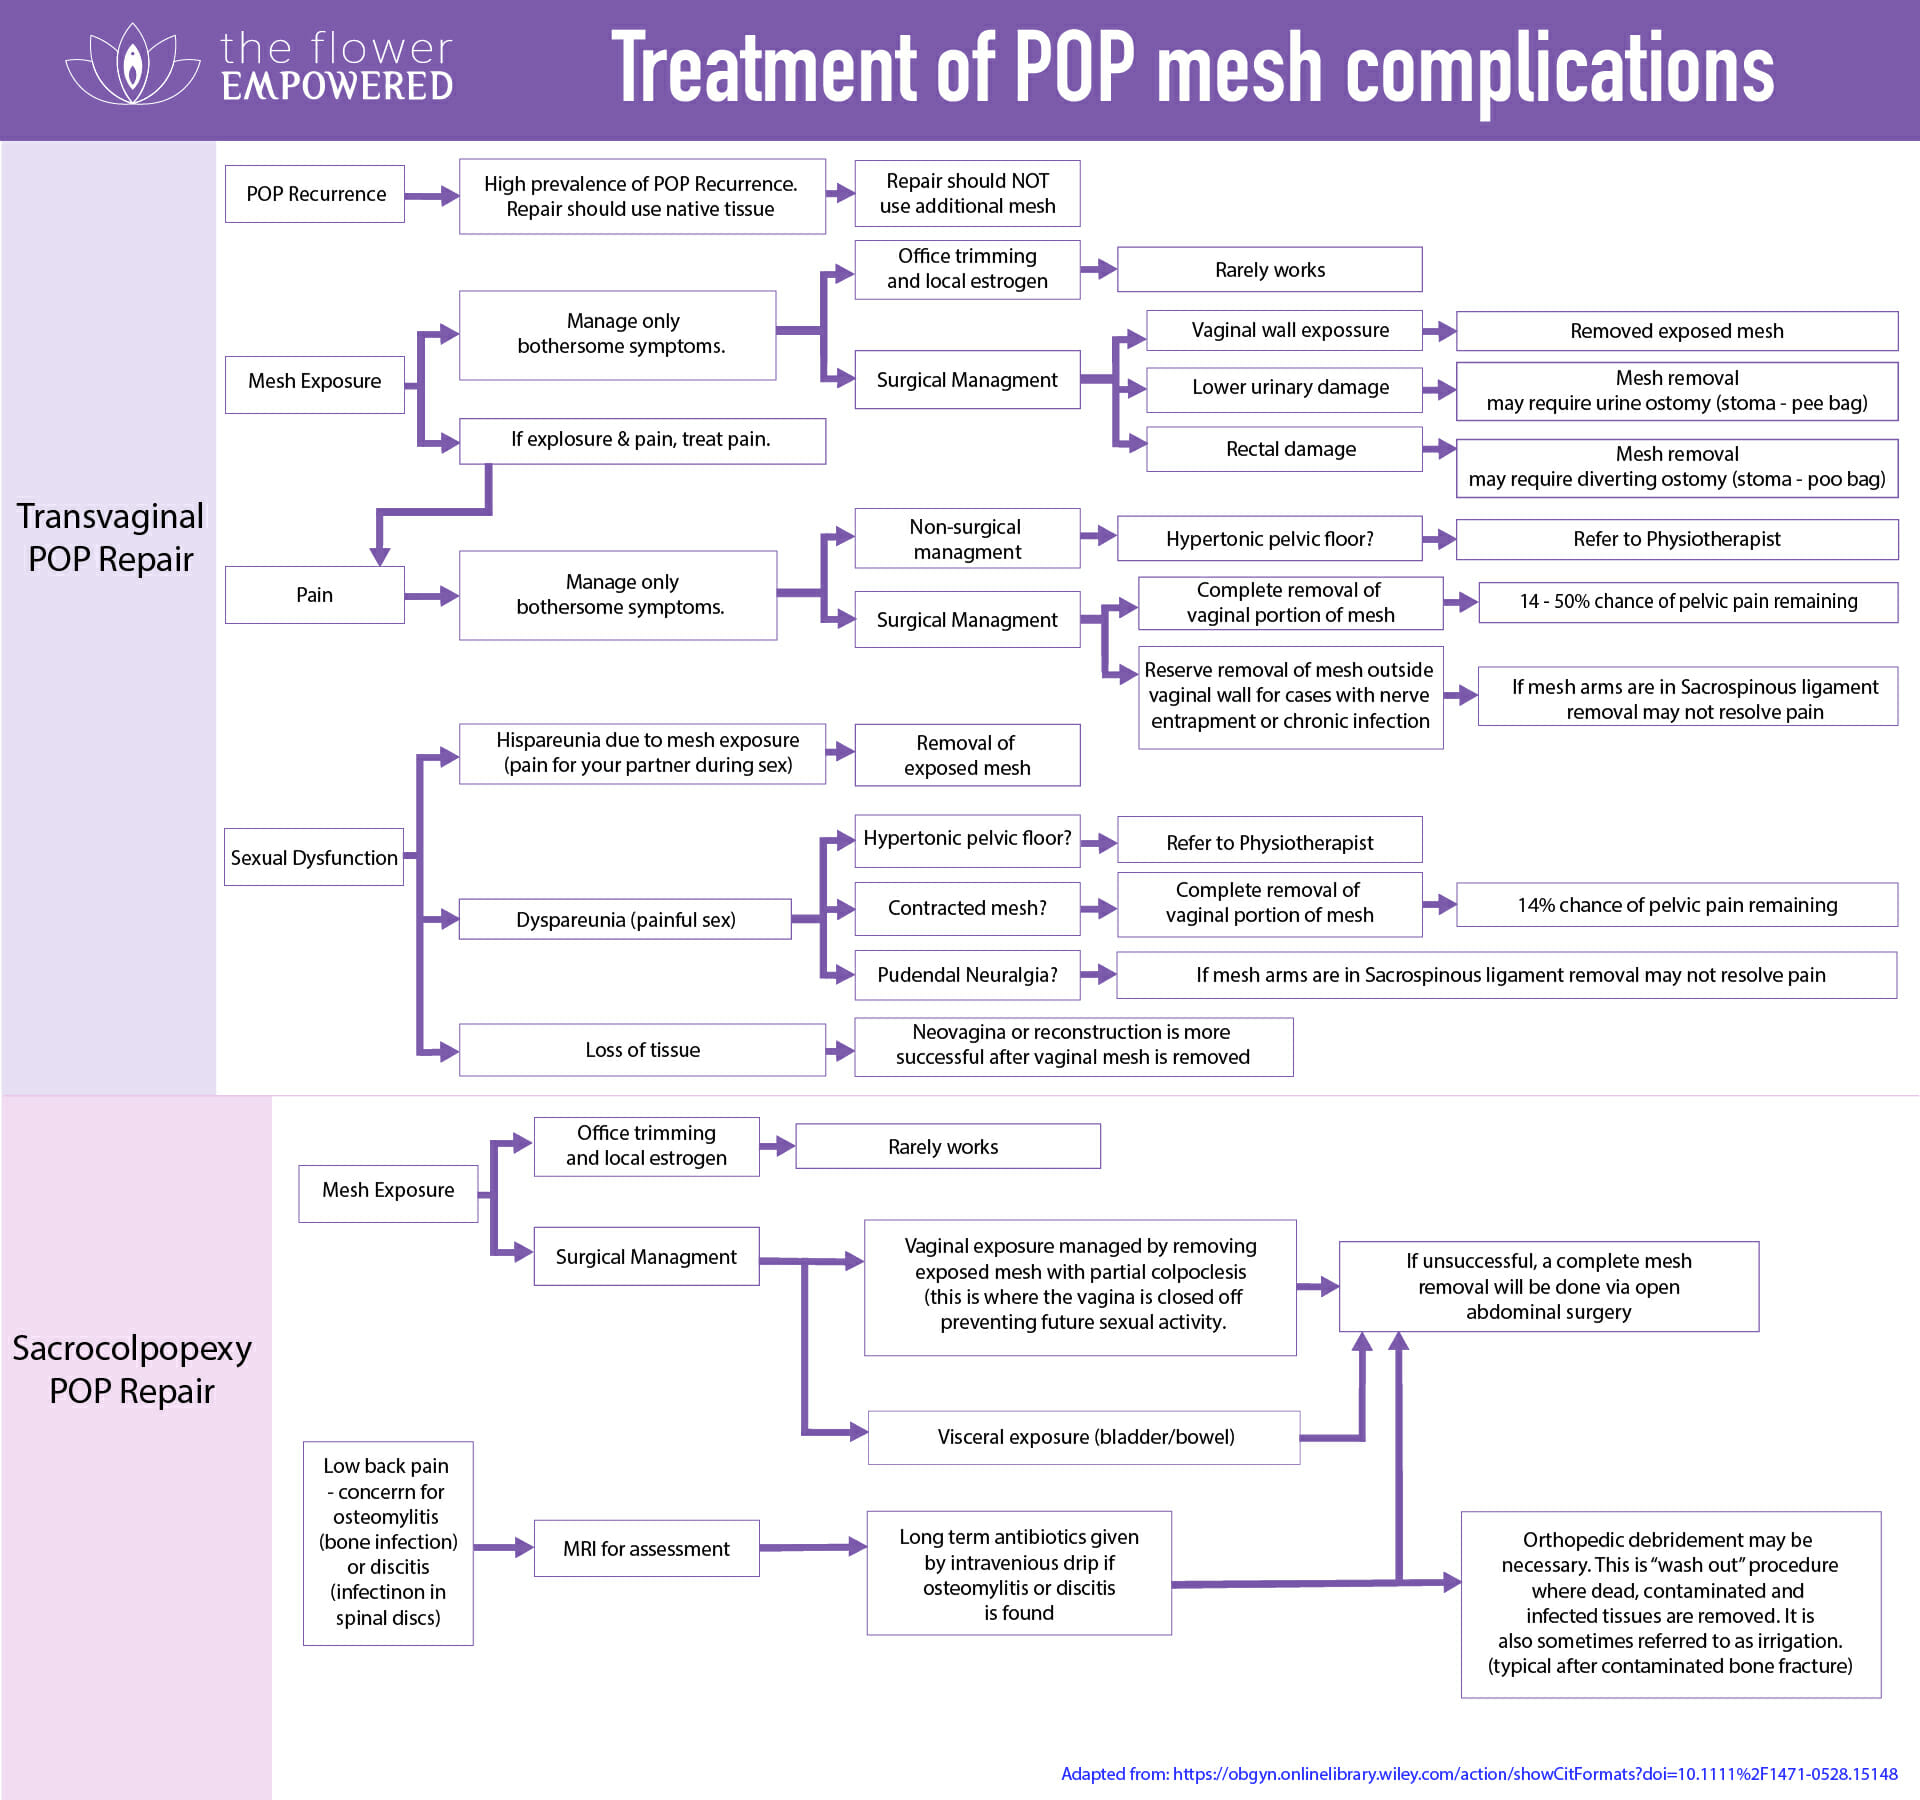 Treatment of Pelvic Organ Prolapse Mesh complications